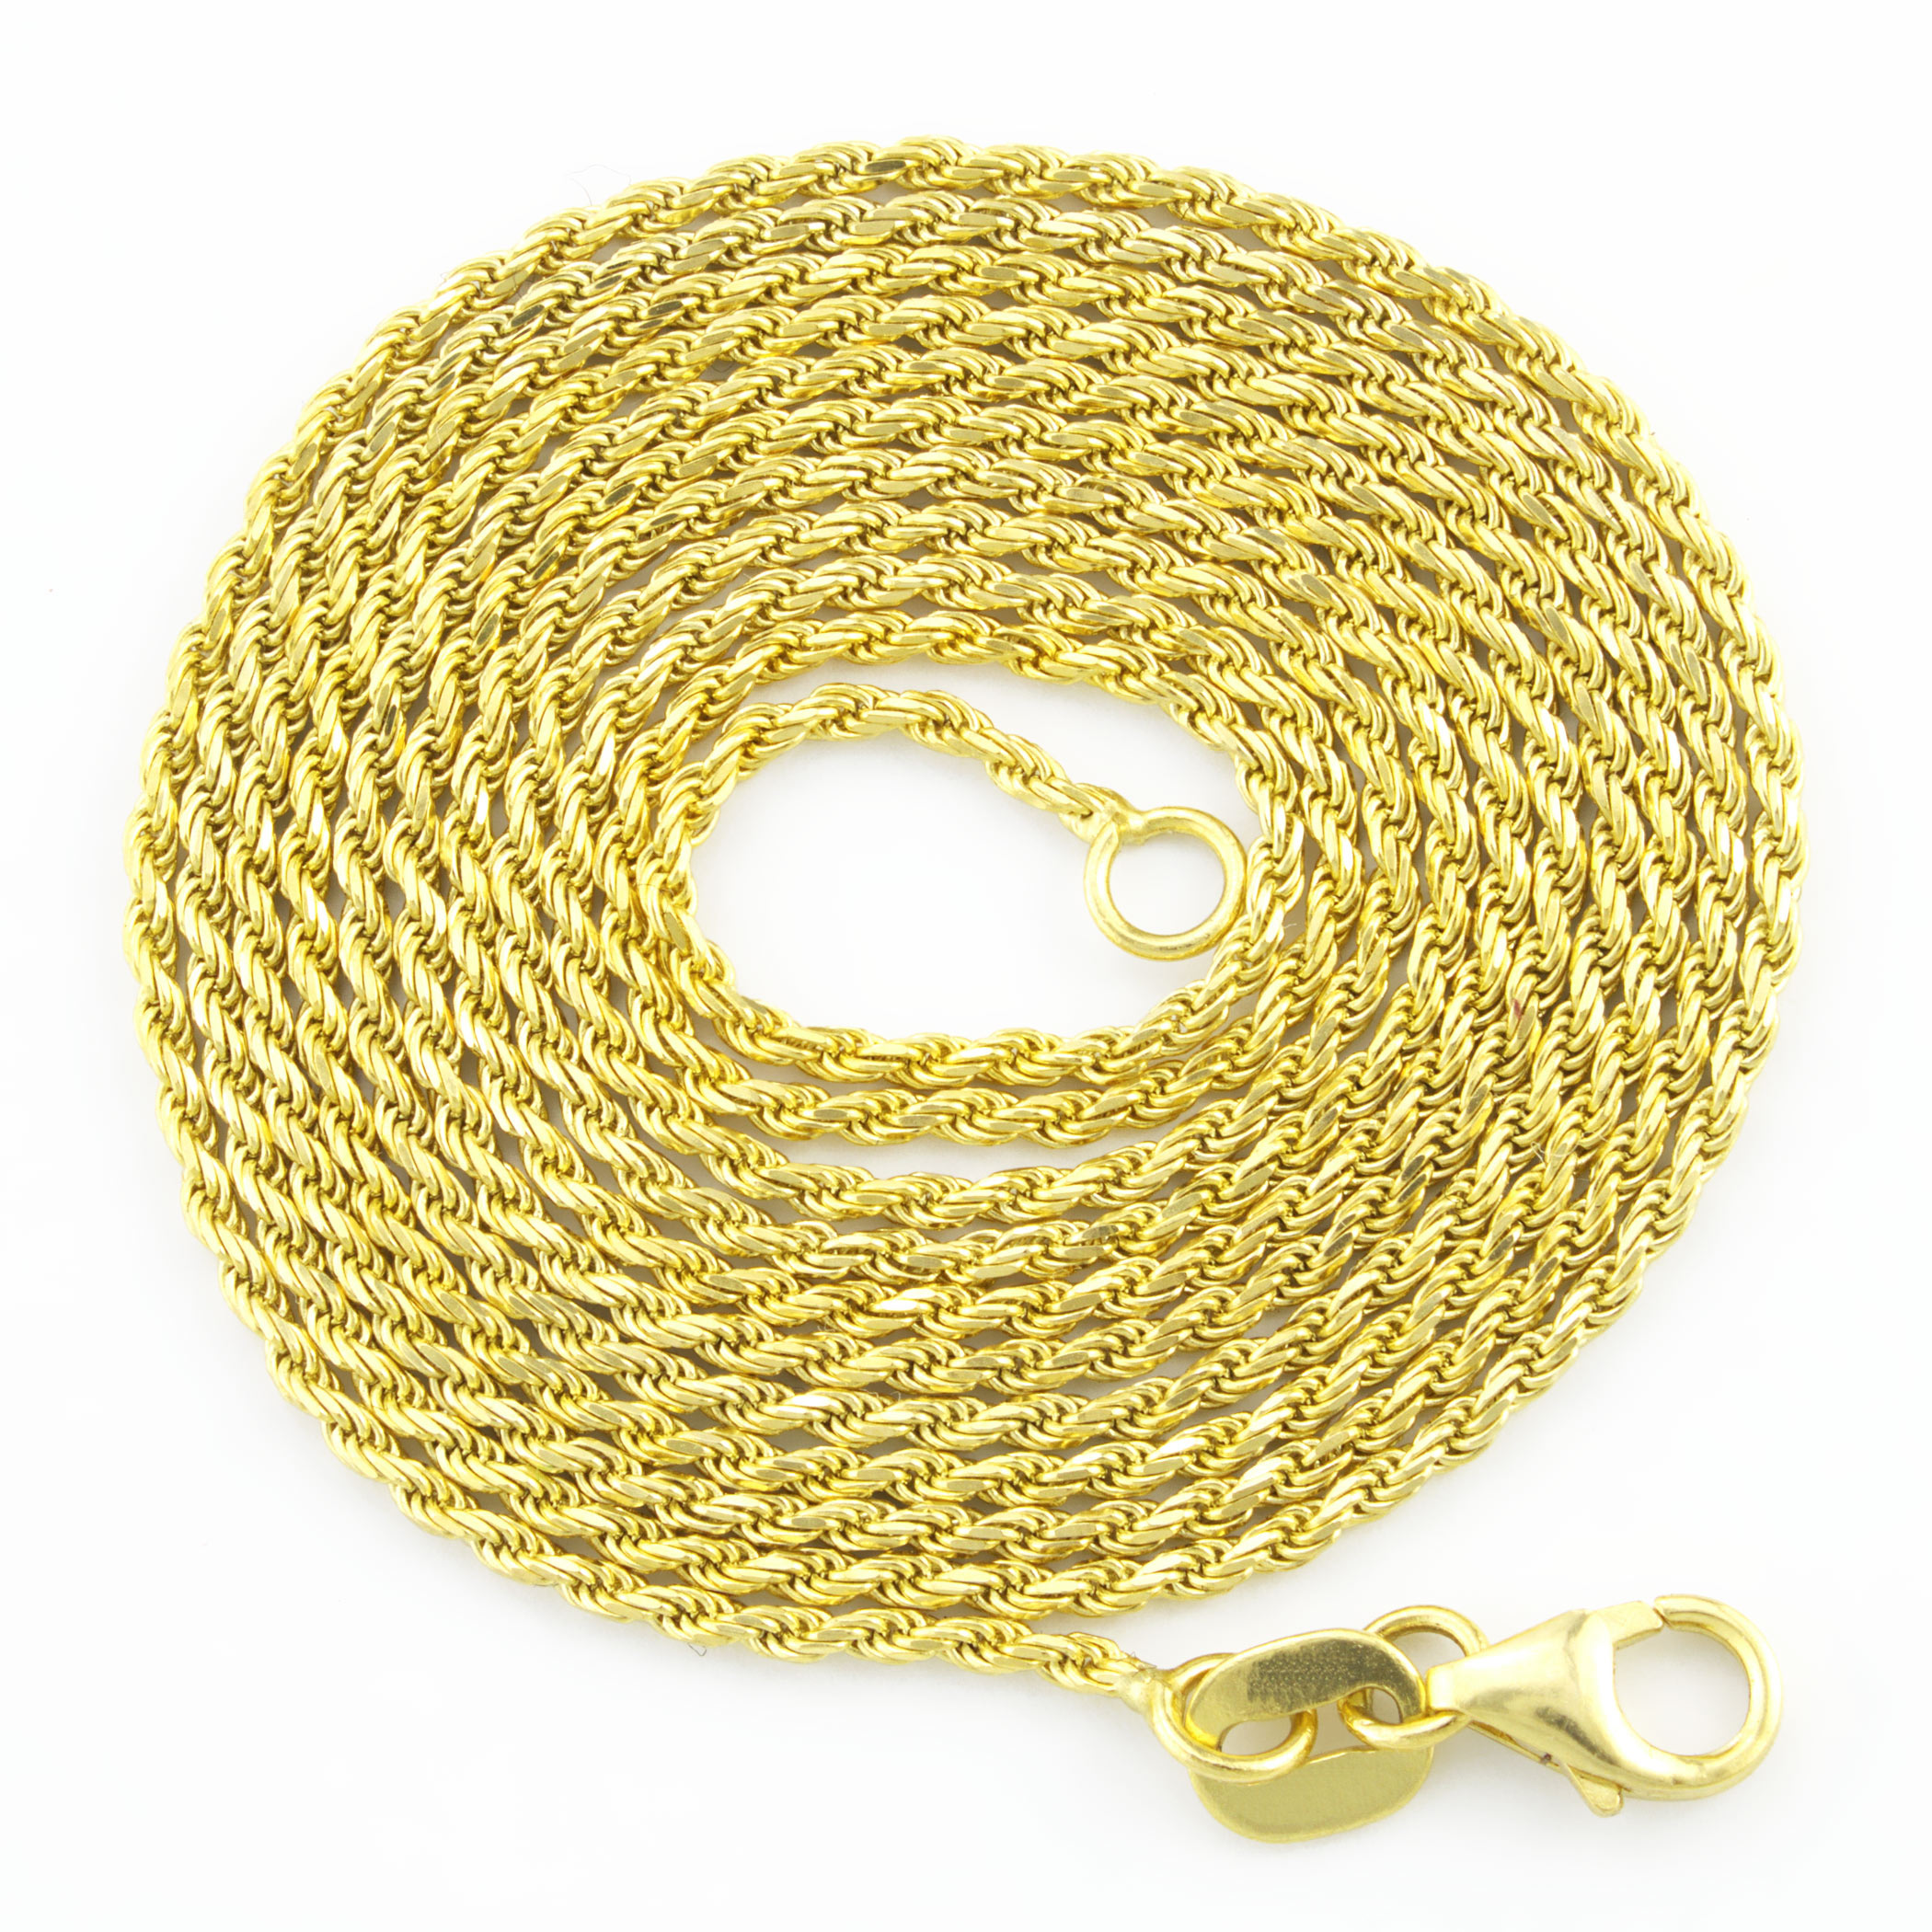 14k Yellow Gold 3 Layer Ropa Circles Chain Necklace 16inch